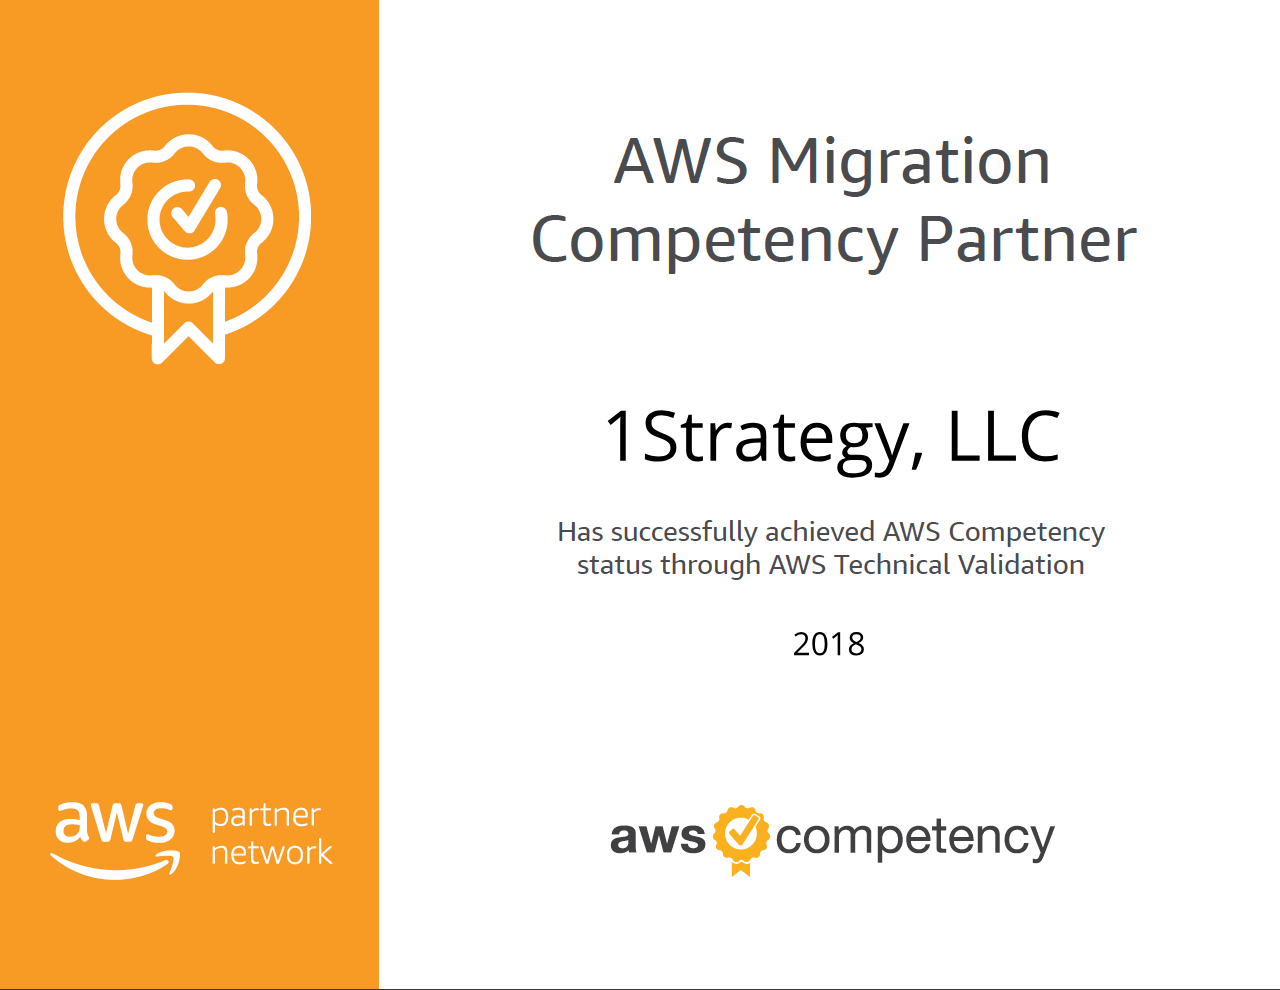 AWS Migration Competency – 1Strategy